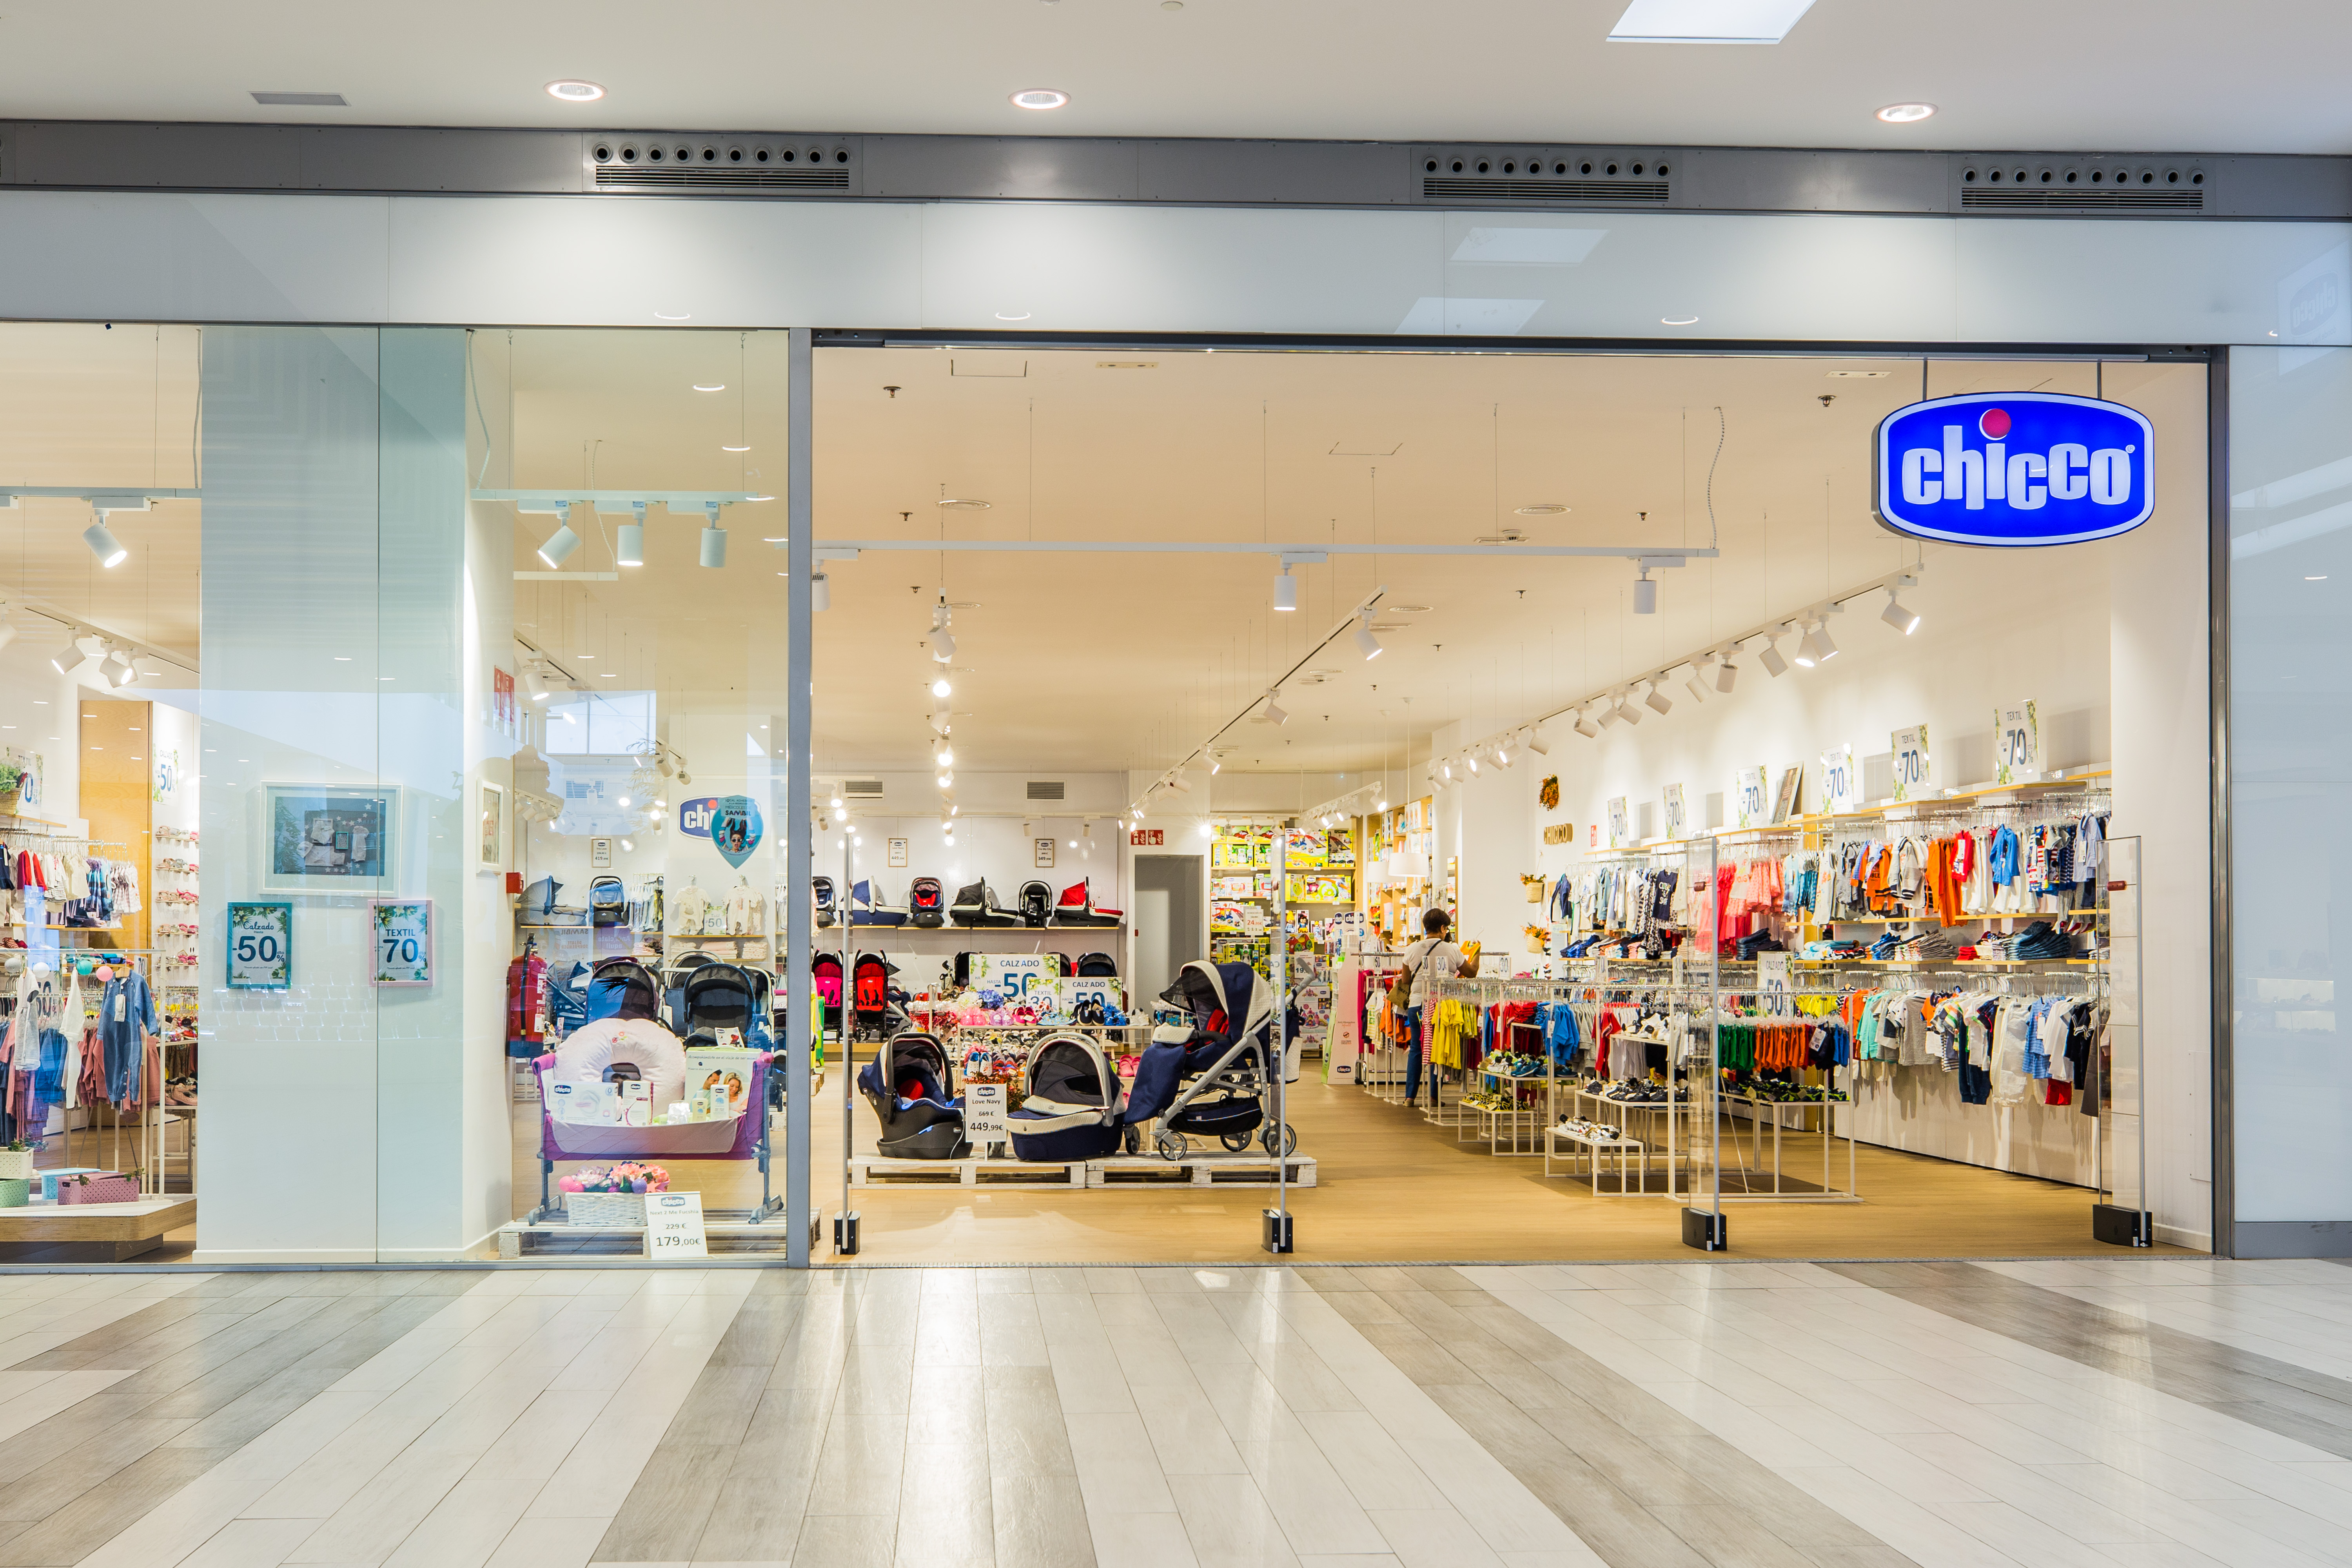 Madrid Sambil Outlet Chicco Outlet Chicco Sambil jqpLUMVSzG